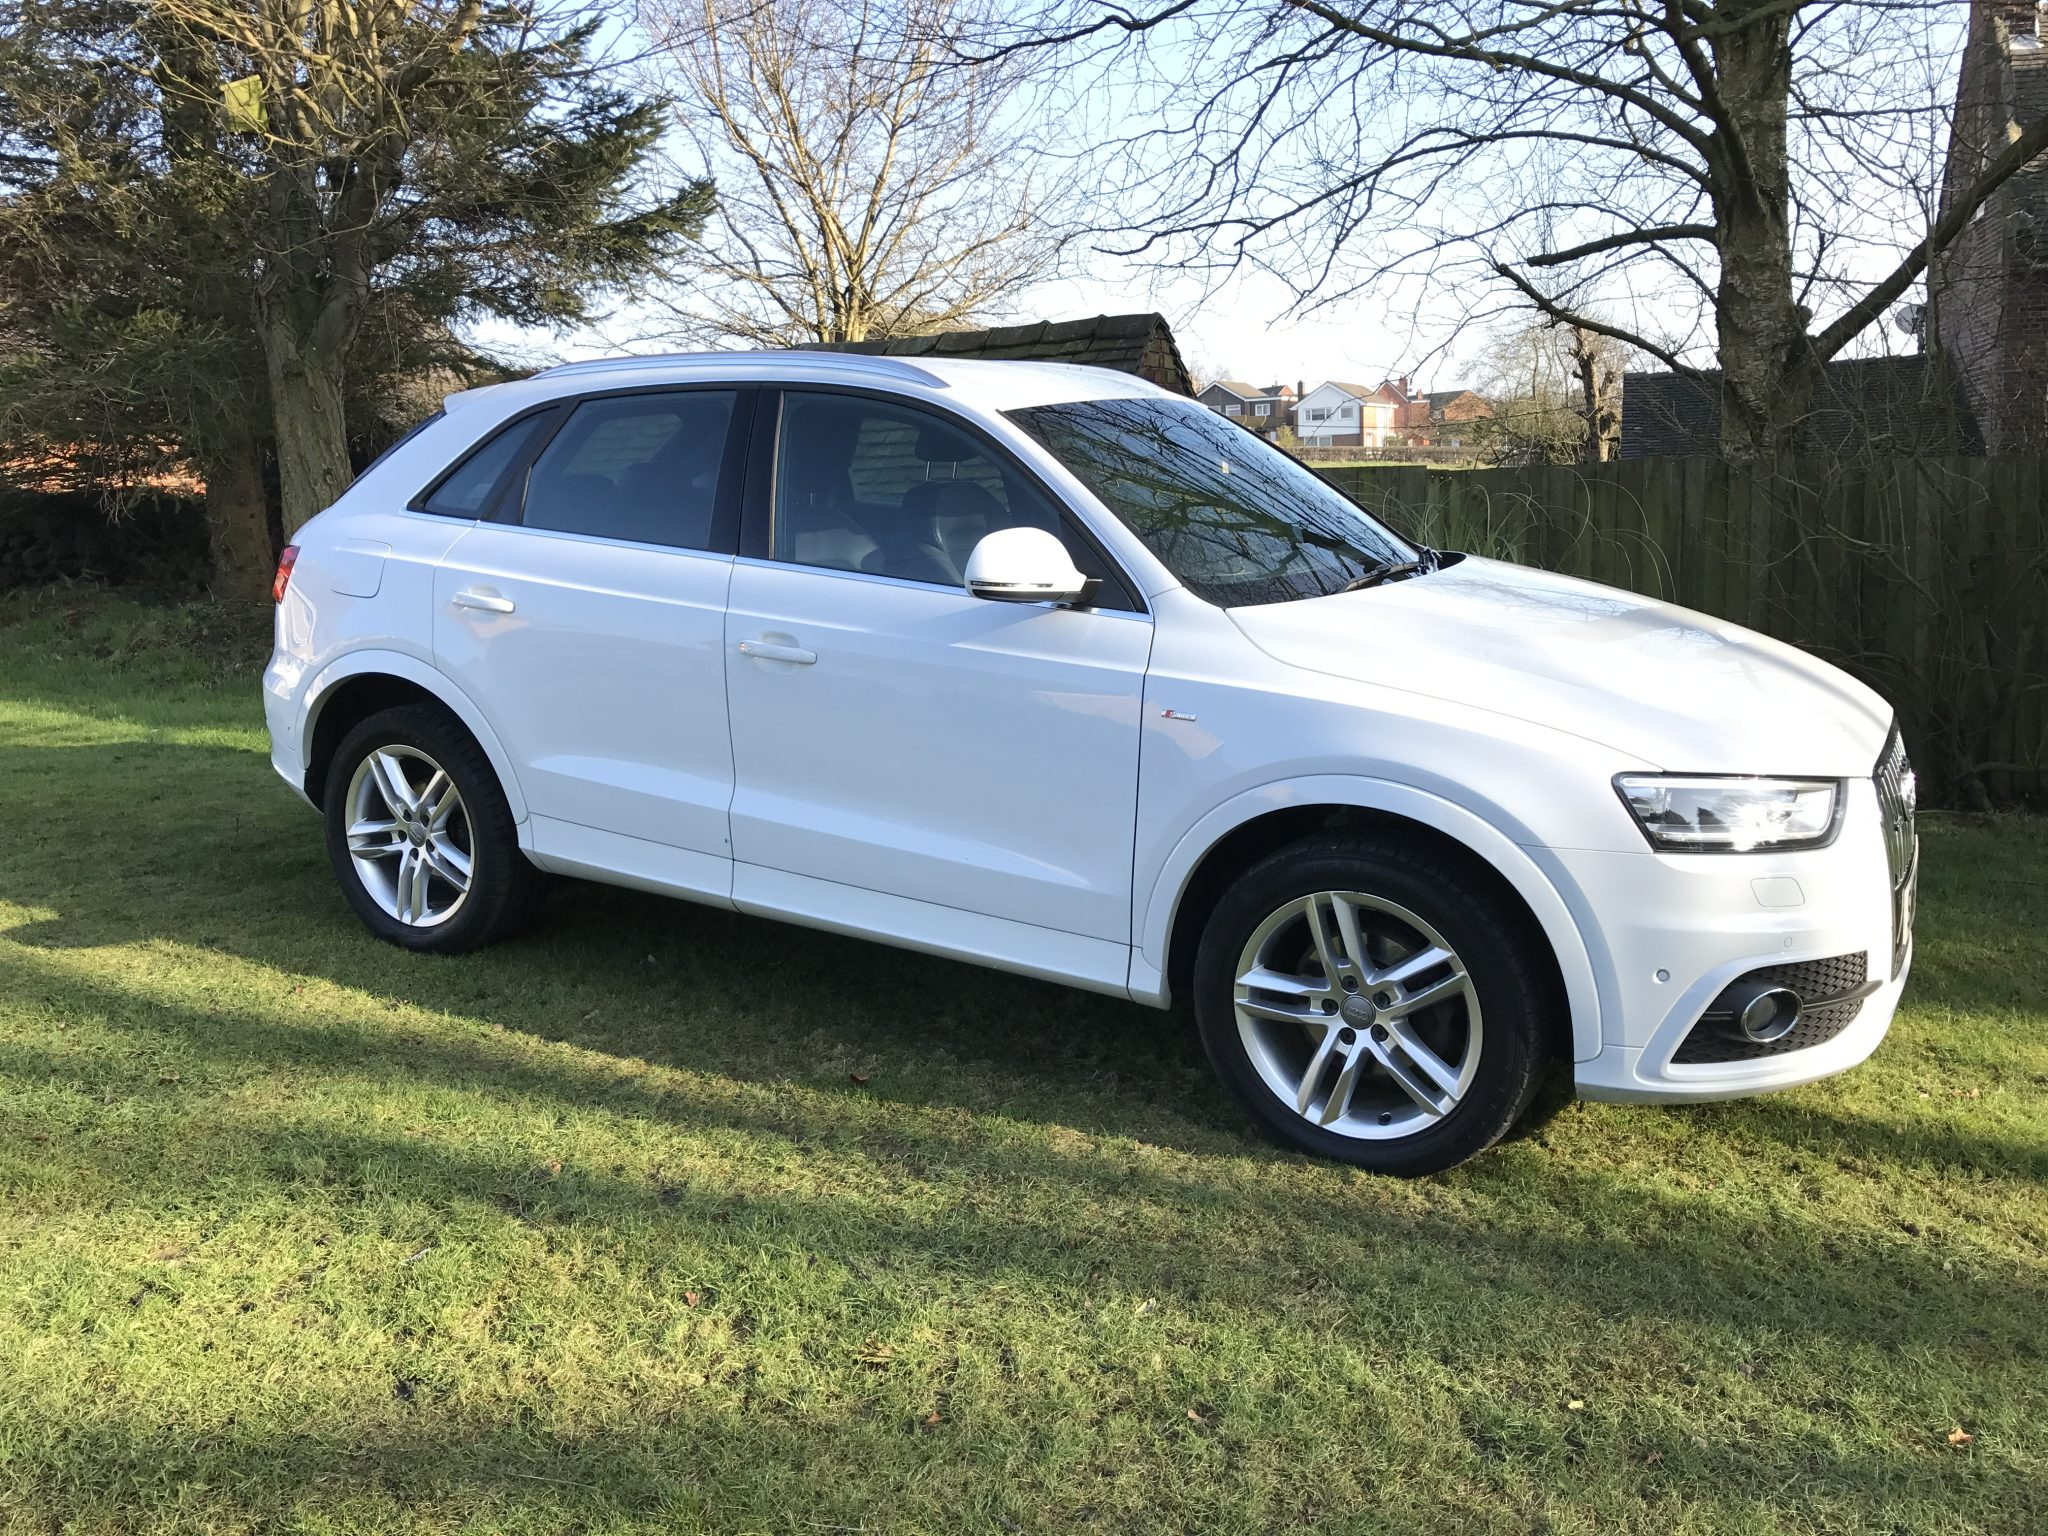 audi q3 s line 2 0 tdi quattro manual heated seats. Black Bedroom Furniture Sets. Home Design Ideas